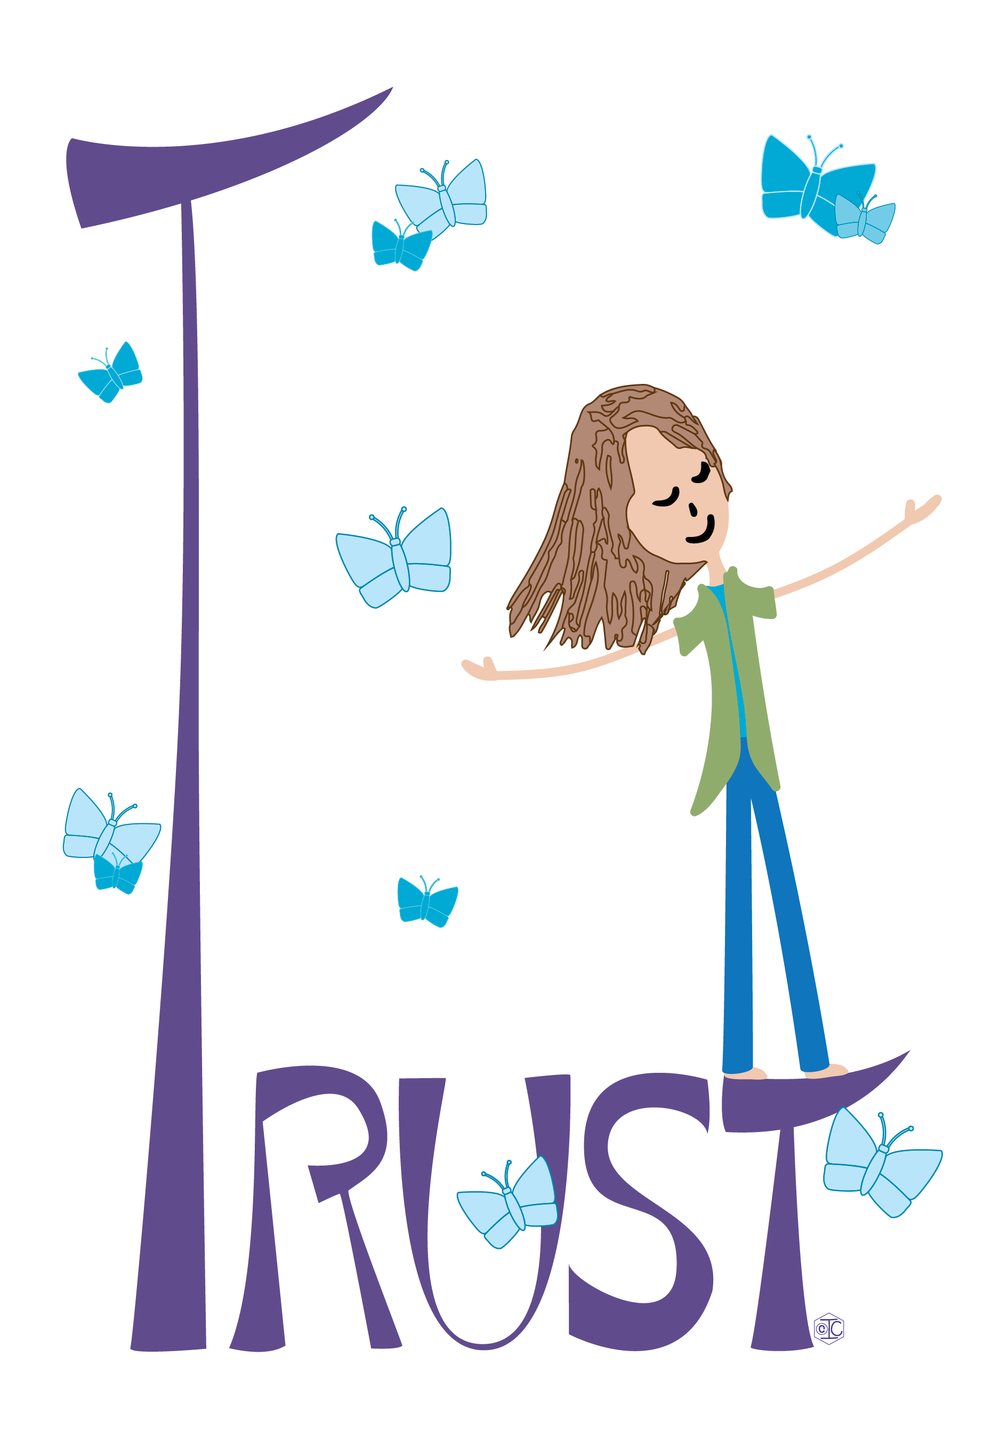 TRUST illustration_CARD 900x1300px.png